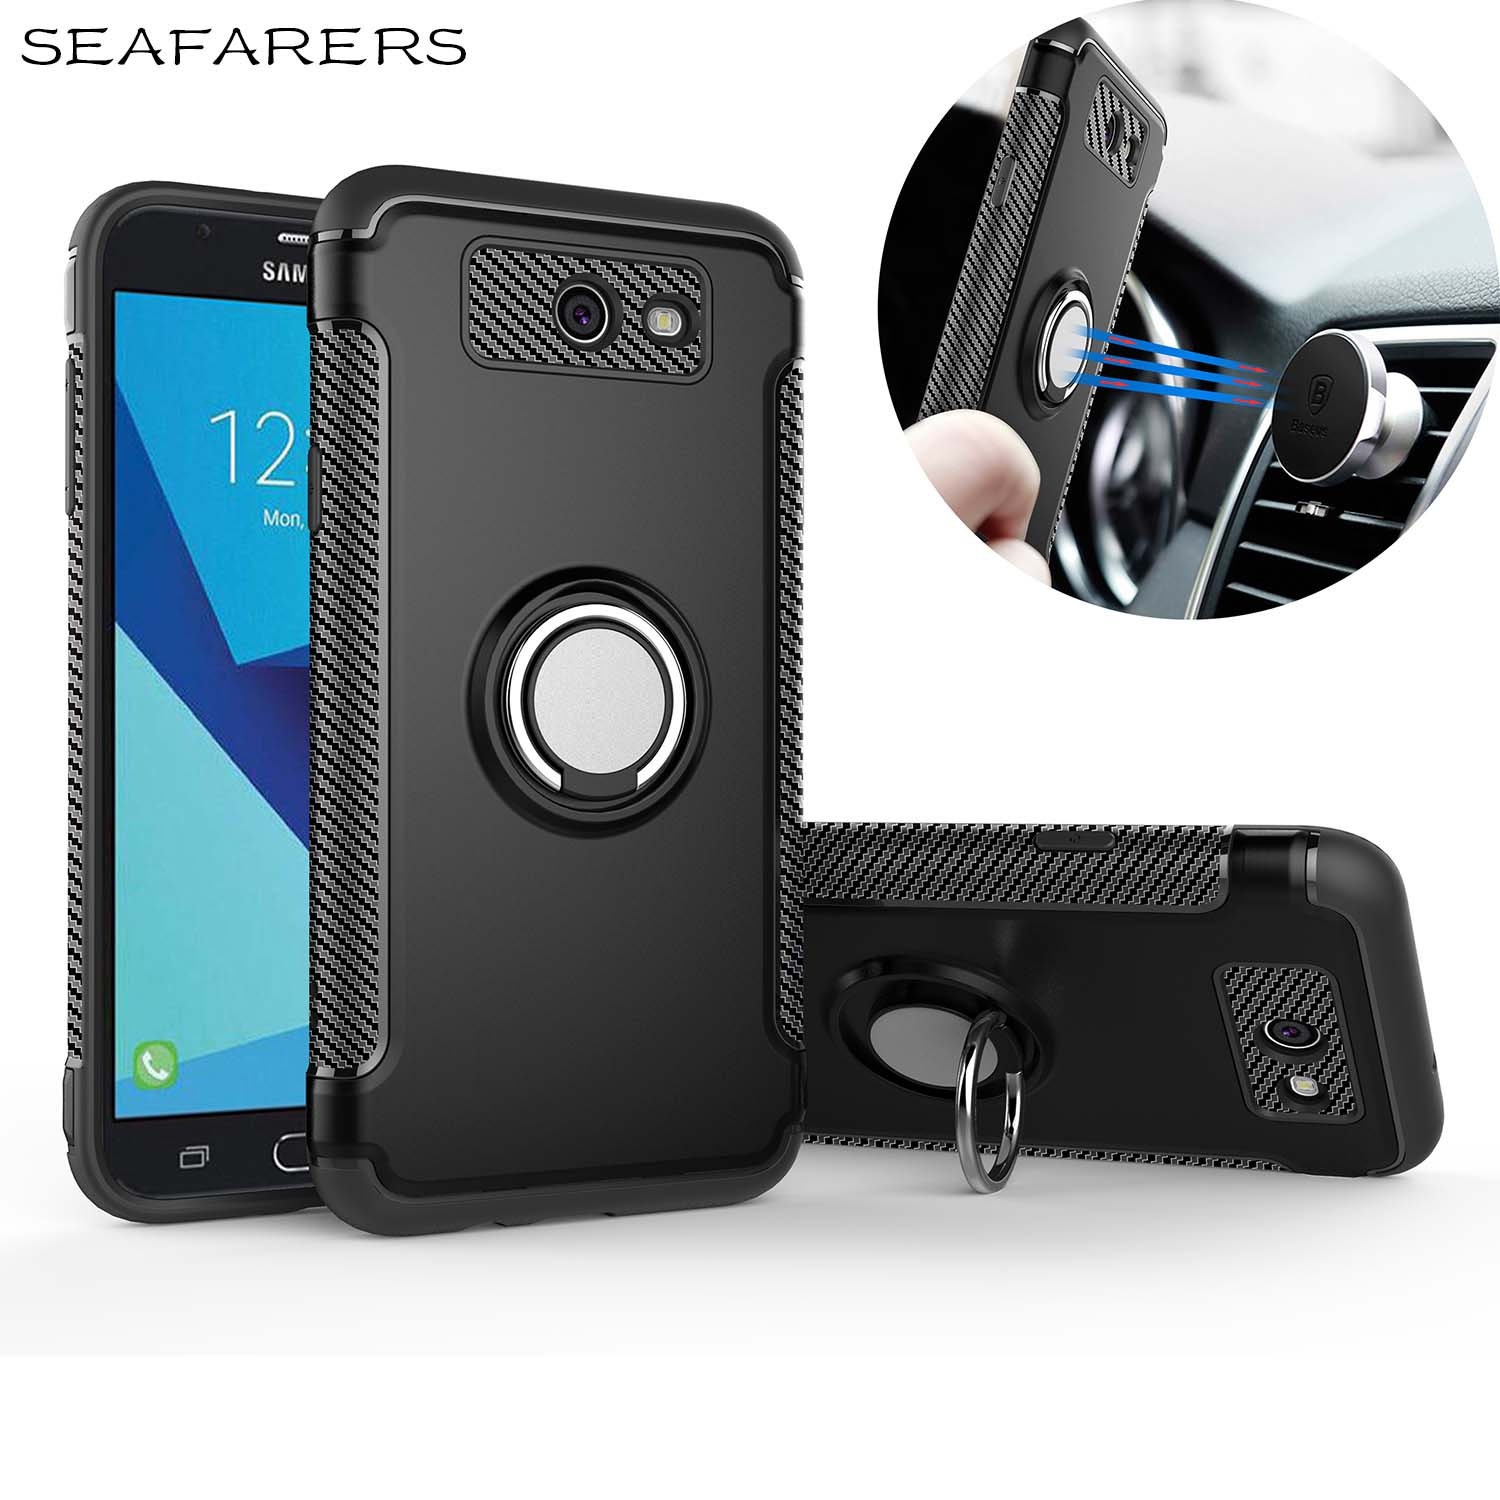 Phone Cover For Samsung Galaxy J7 V Galaxy J7 V J727v Galaxy J7 Perx J727p Case Car Holder